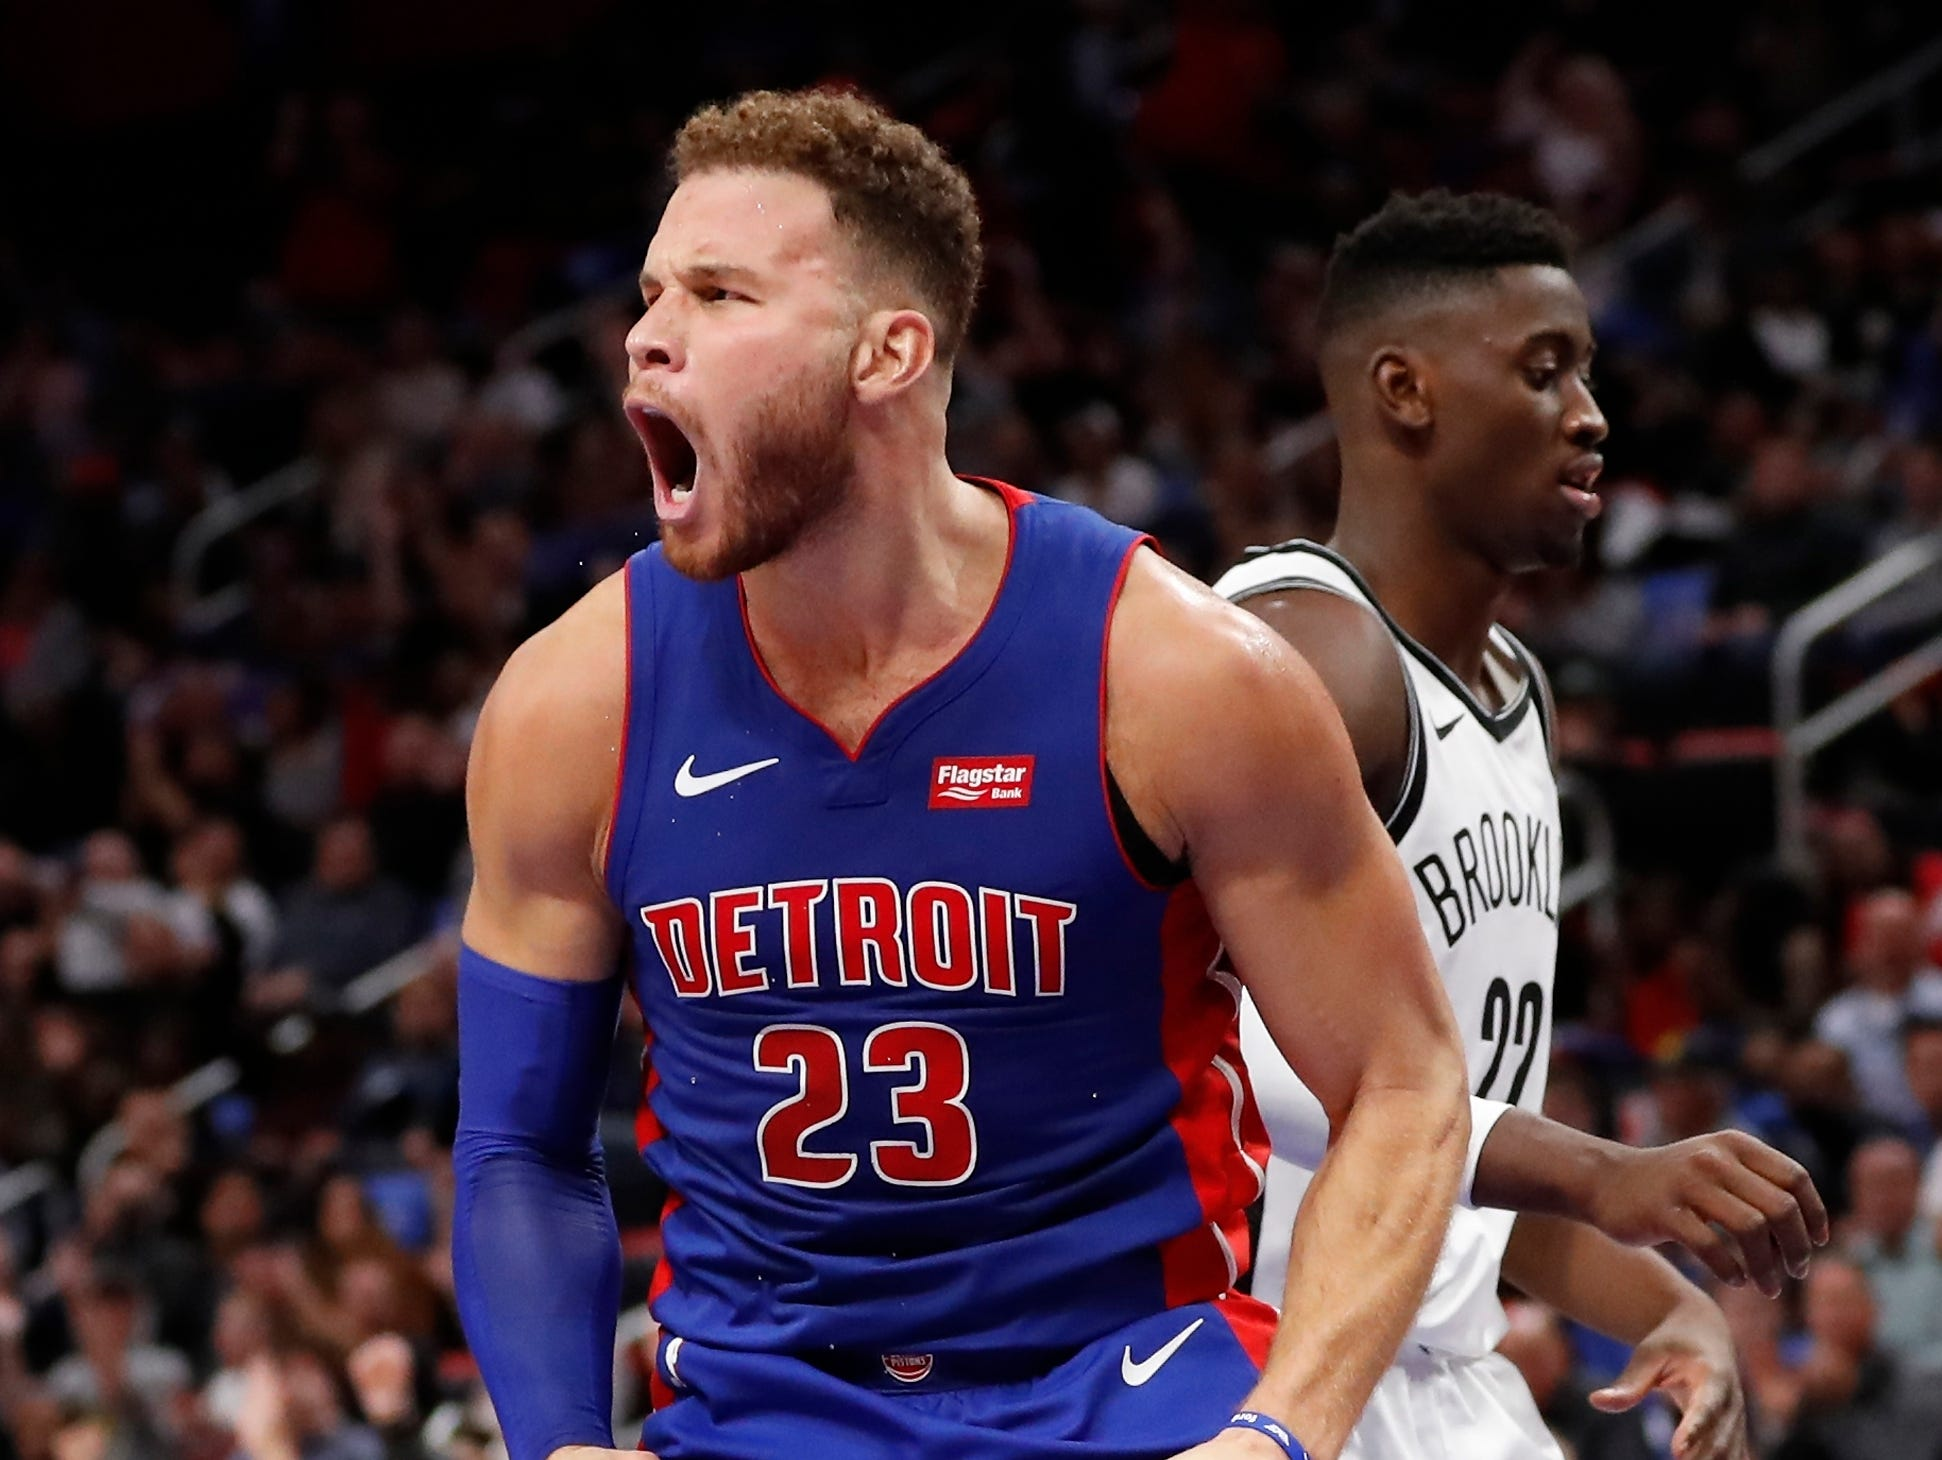 Detroit Pistons forward Blake Griffin reacts after scoring during the second half of an NBA basketball game against the Brooklyn Nets, Wednesday, Oct. 17, 2018, in Detroit. (AP Photo/Carlos Osorio)